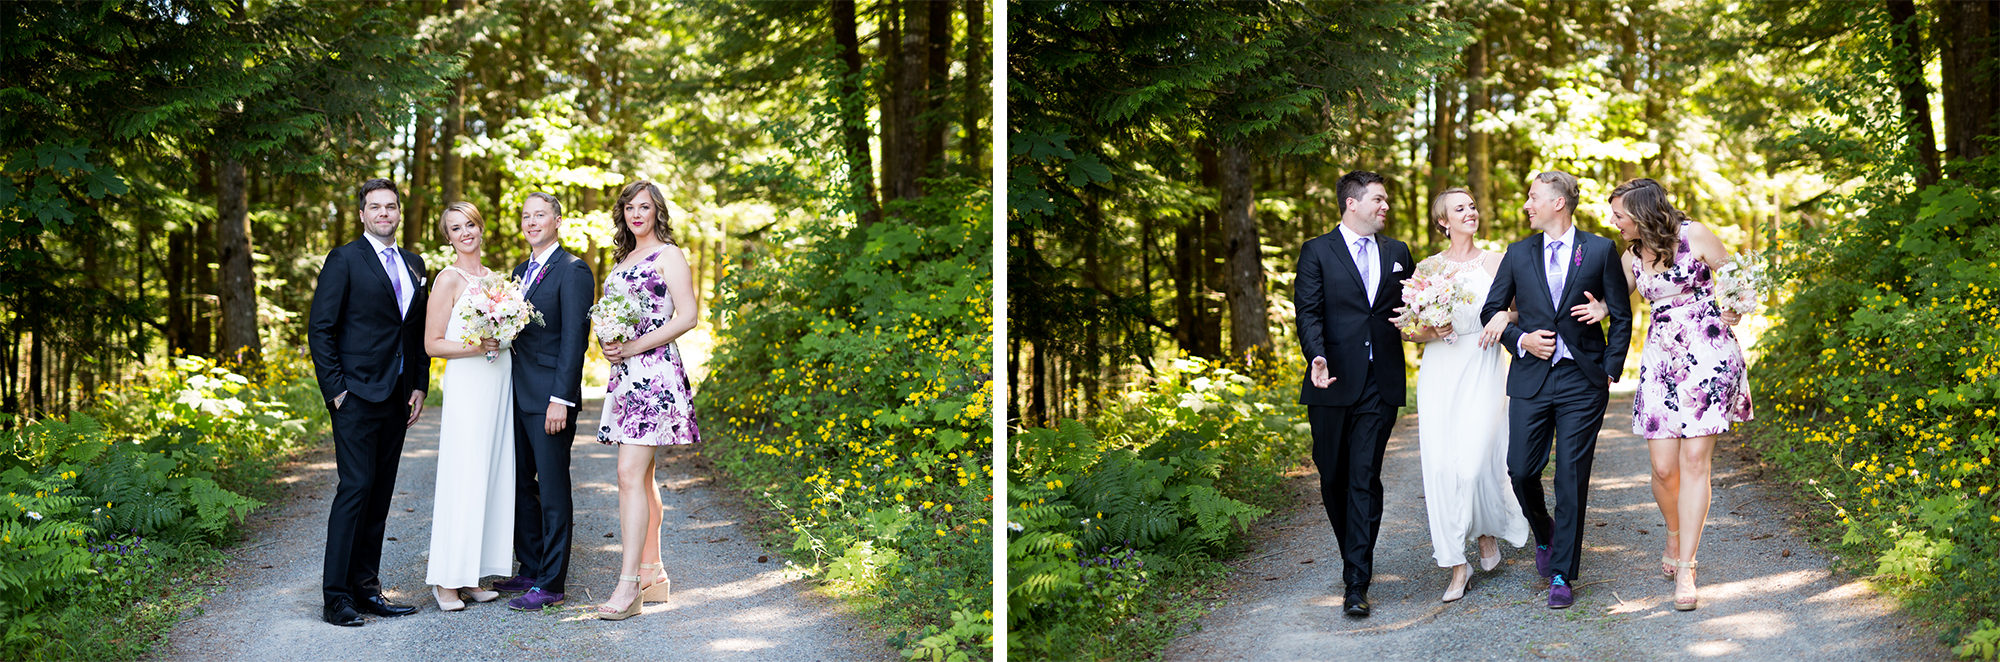 Wedding Party Hope Wedding British Columbia American Creek Lodge Zsuzsi Pal Photography